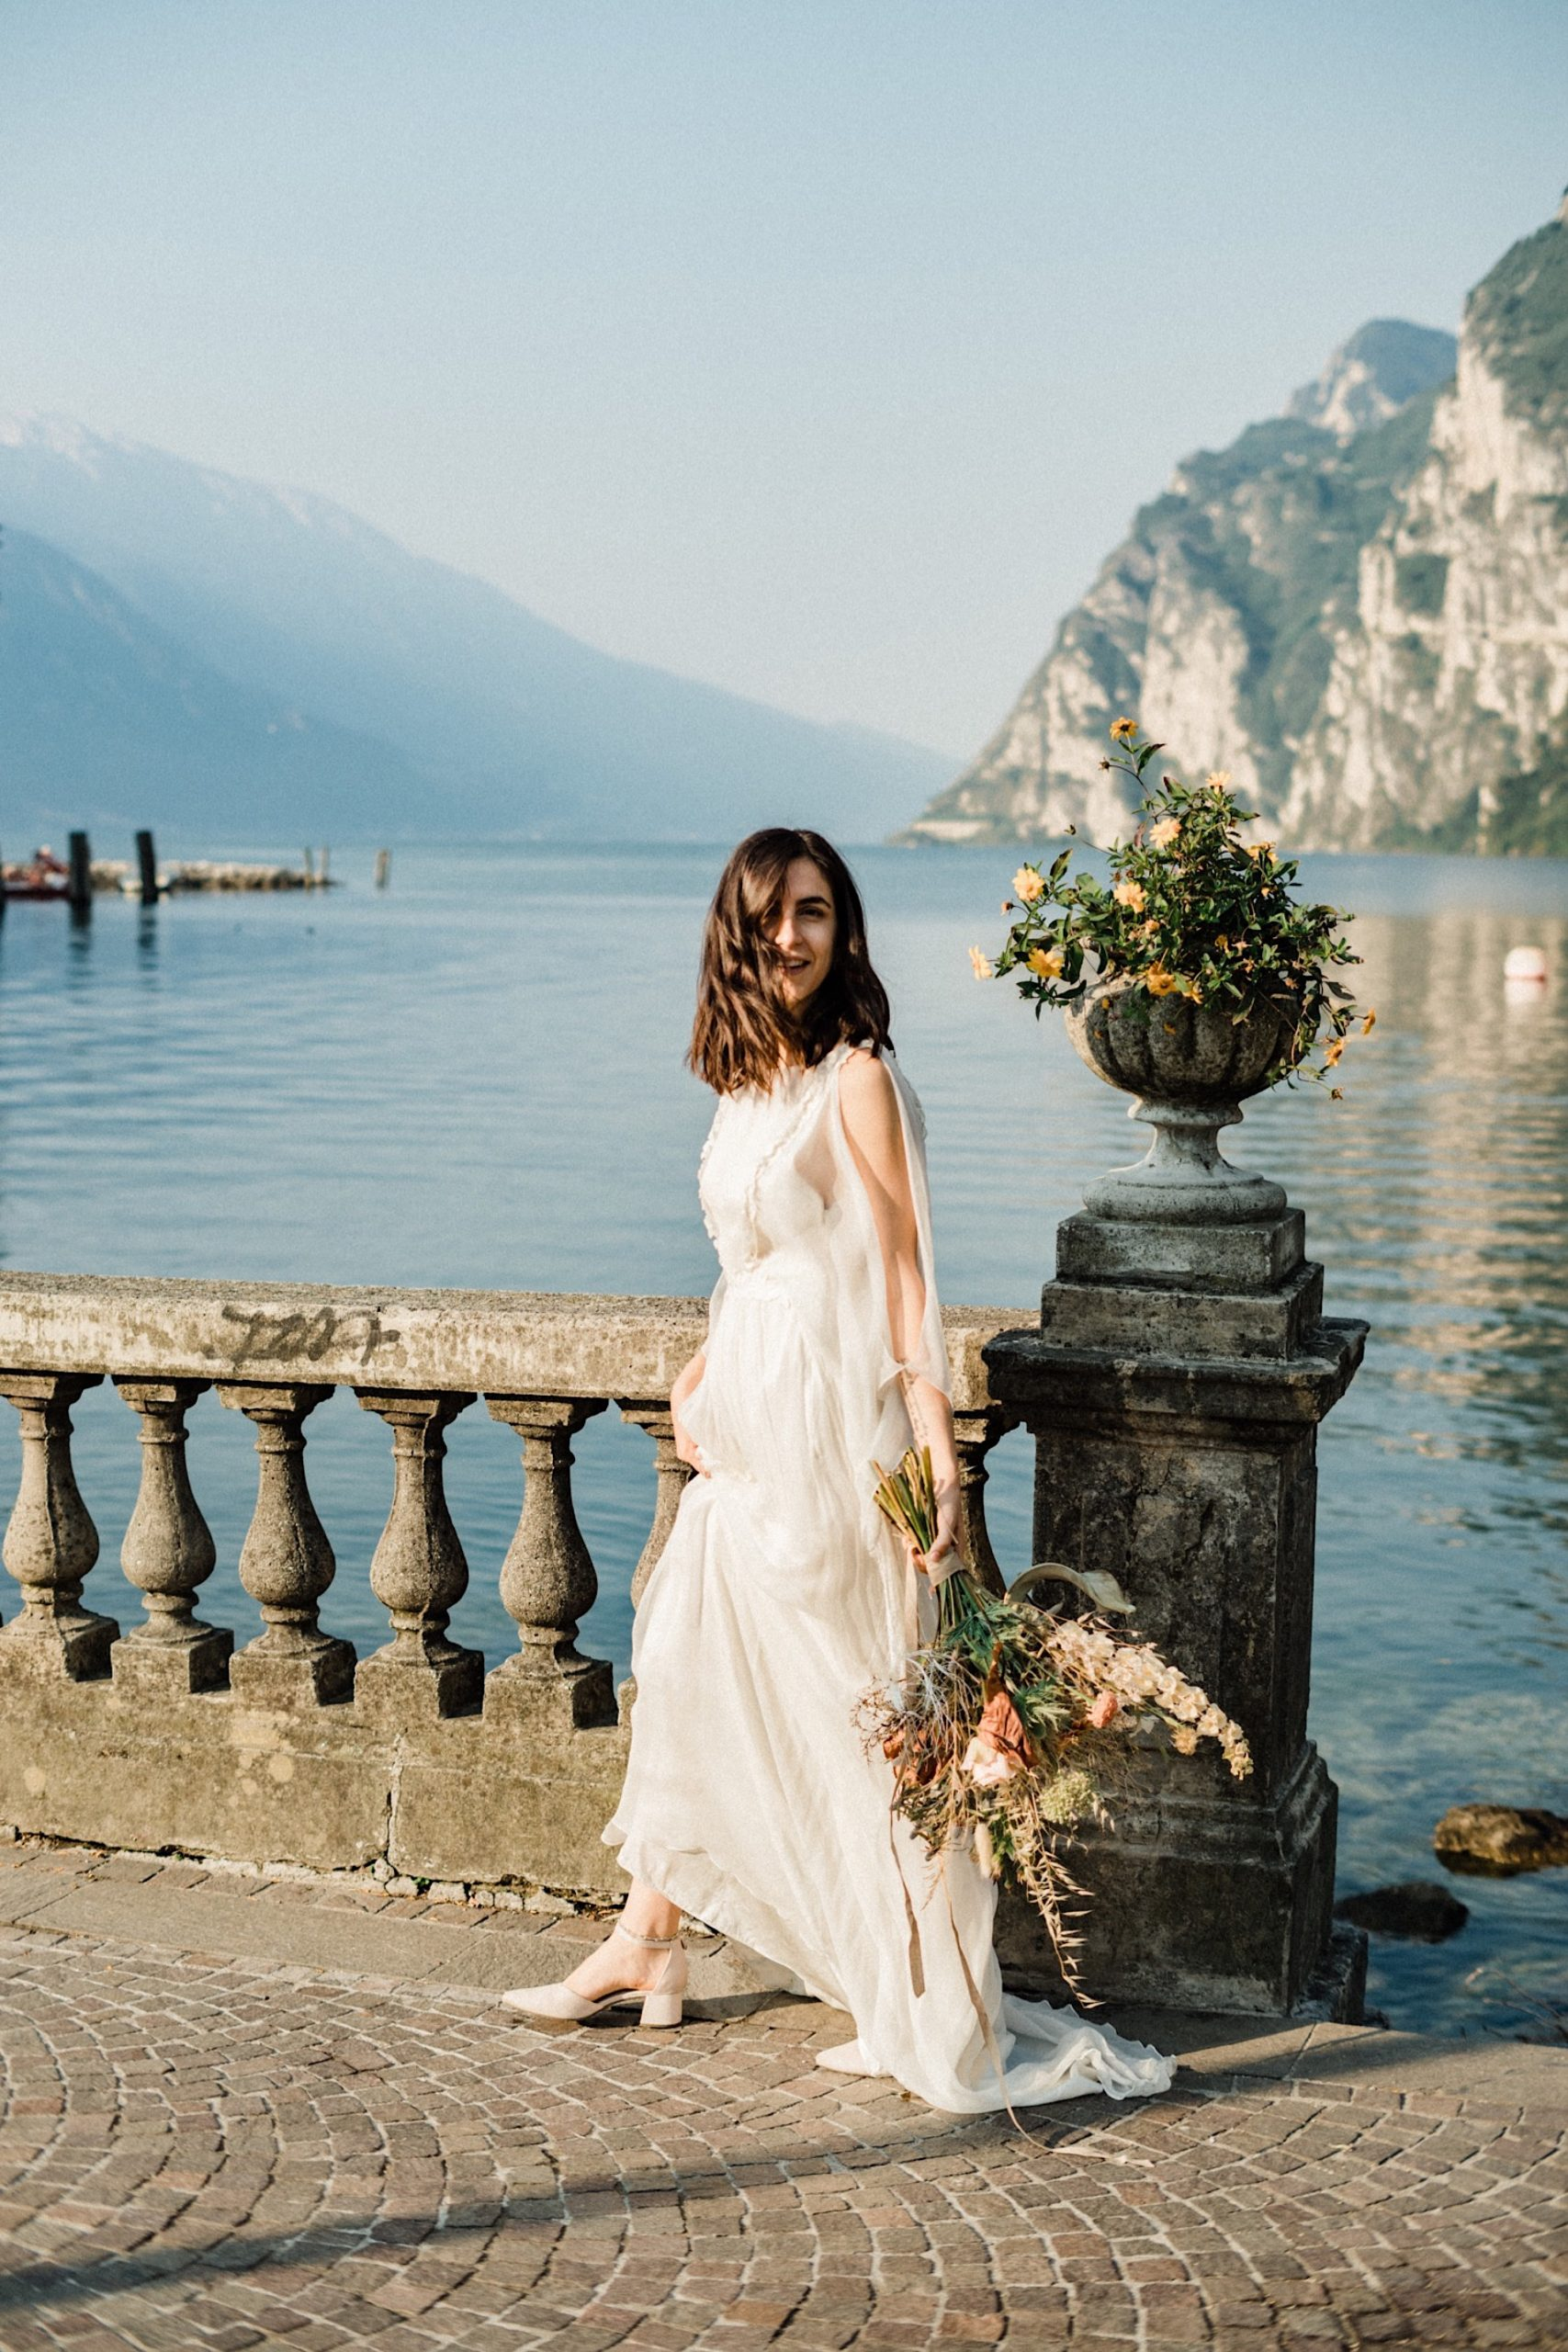 A wide photo of a newly married bride walking and smiling in front of Lake Garda, carrying a beautiful bouquet of dried and fresh flowers/